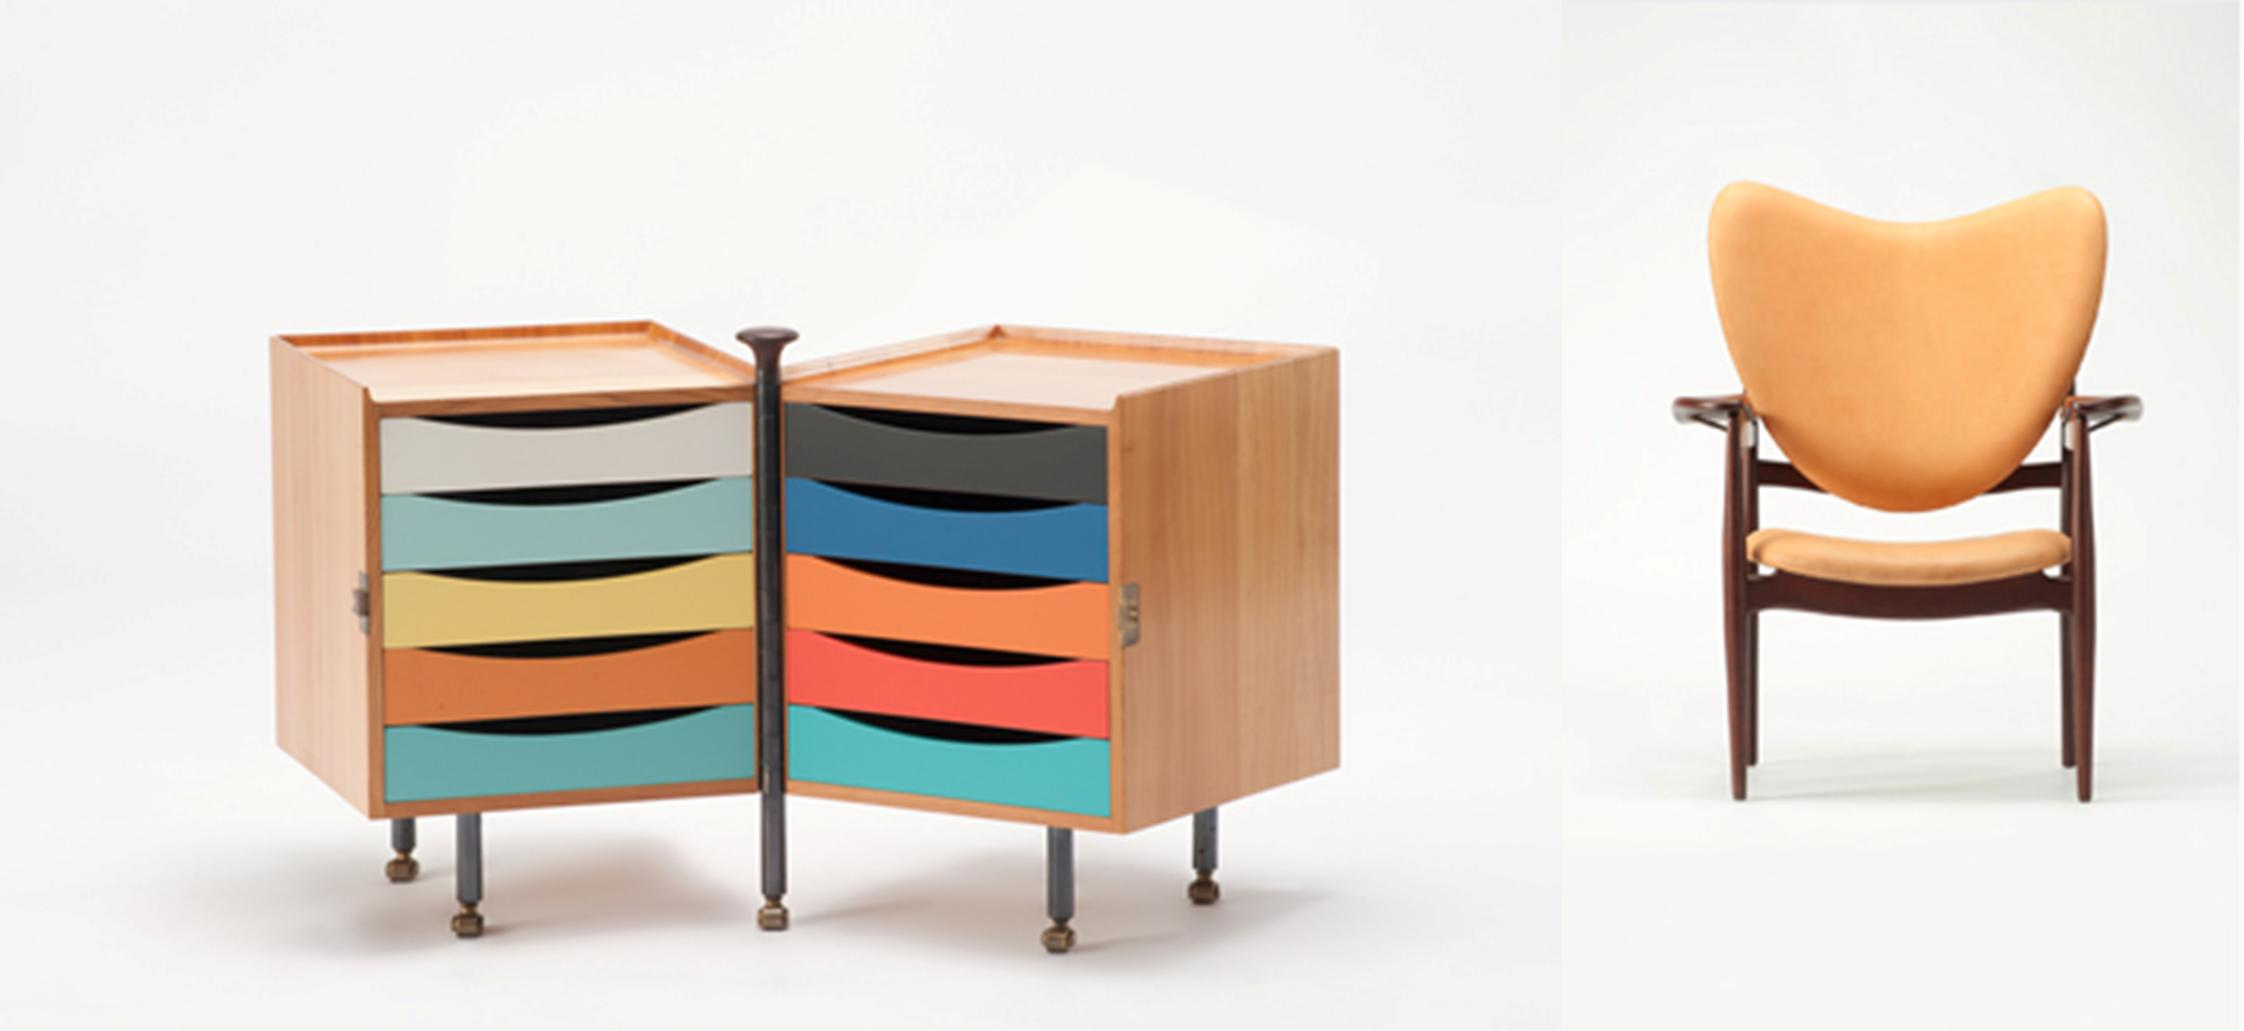 finn juhl chest of drawers 1965 chair. Black Bedroom Furniture Sets. Home Design Ideas